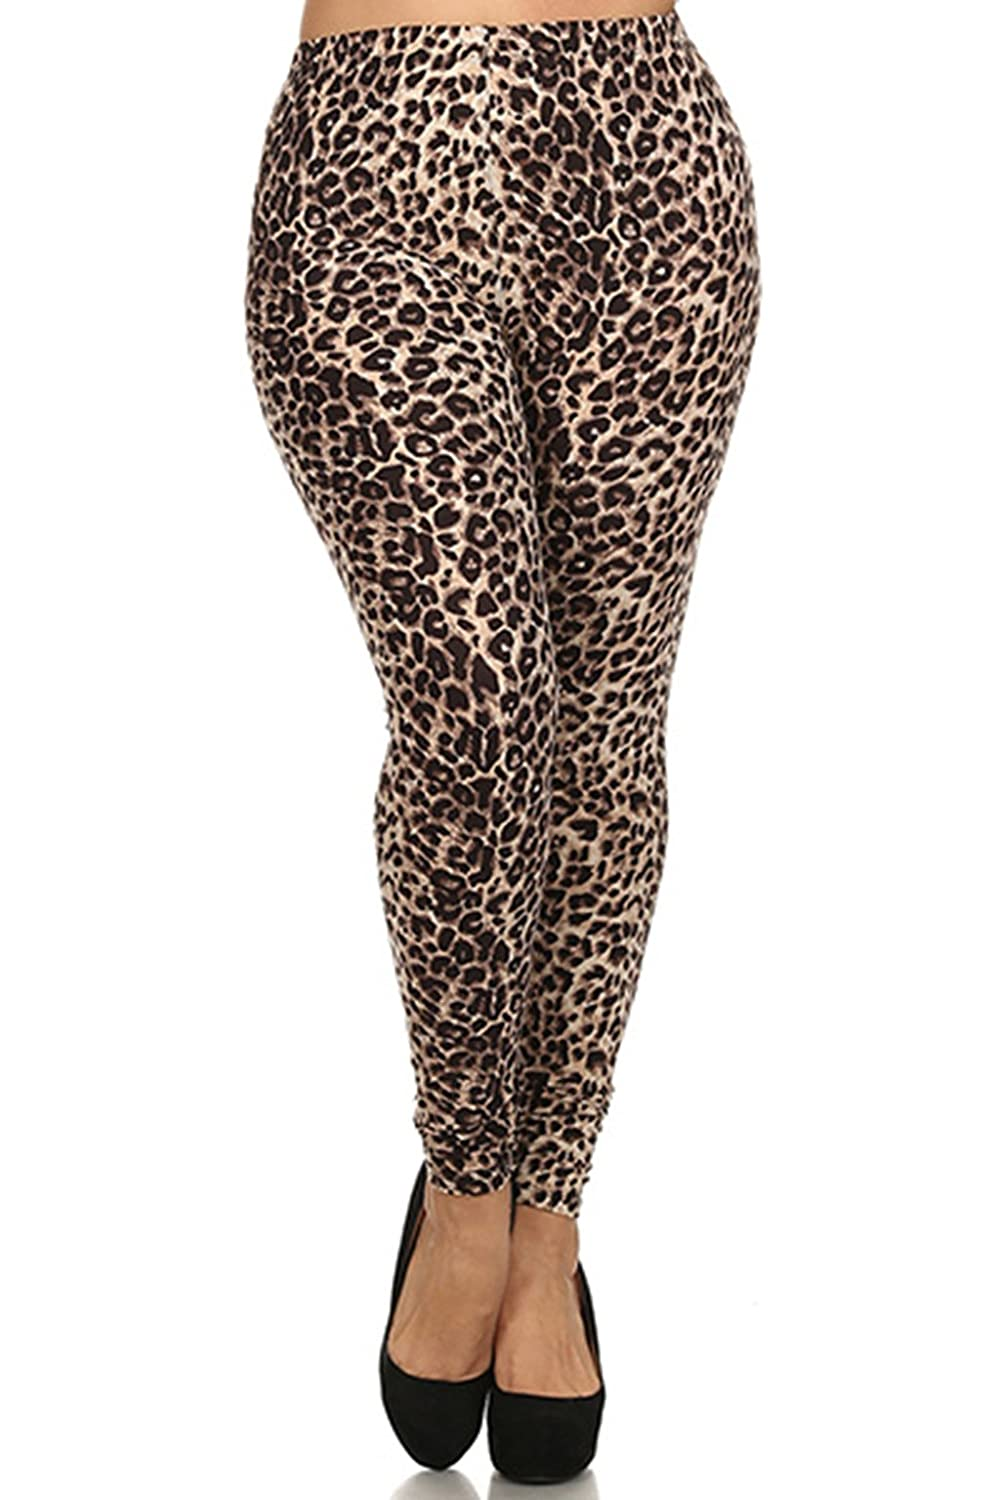 ff586393aa654 Beautiful and comfortable junior plus leggings. Choose from many different  colors and print patterns! 92% Polyester, 8% Spandex (Stretchy)